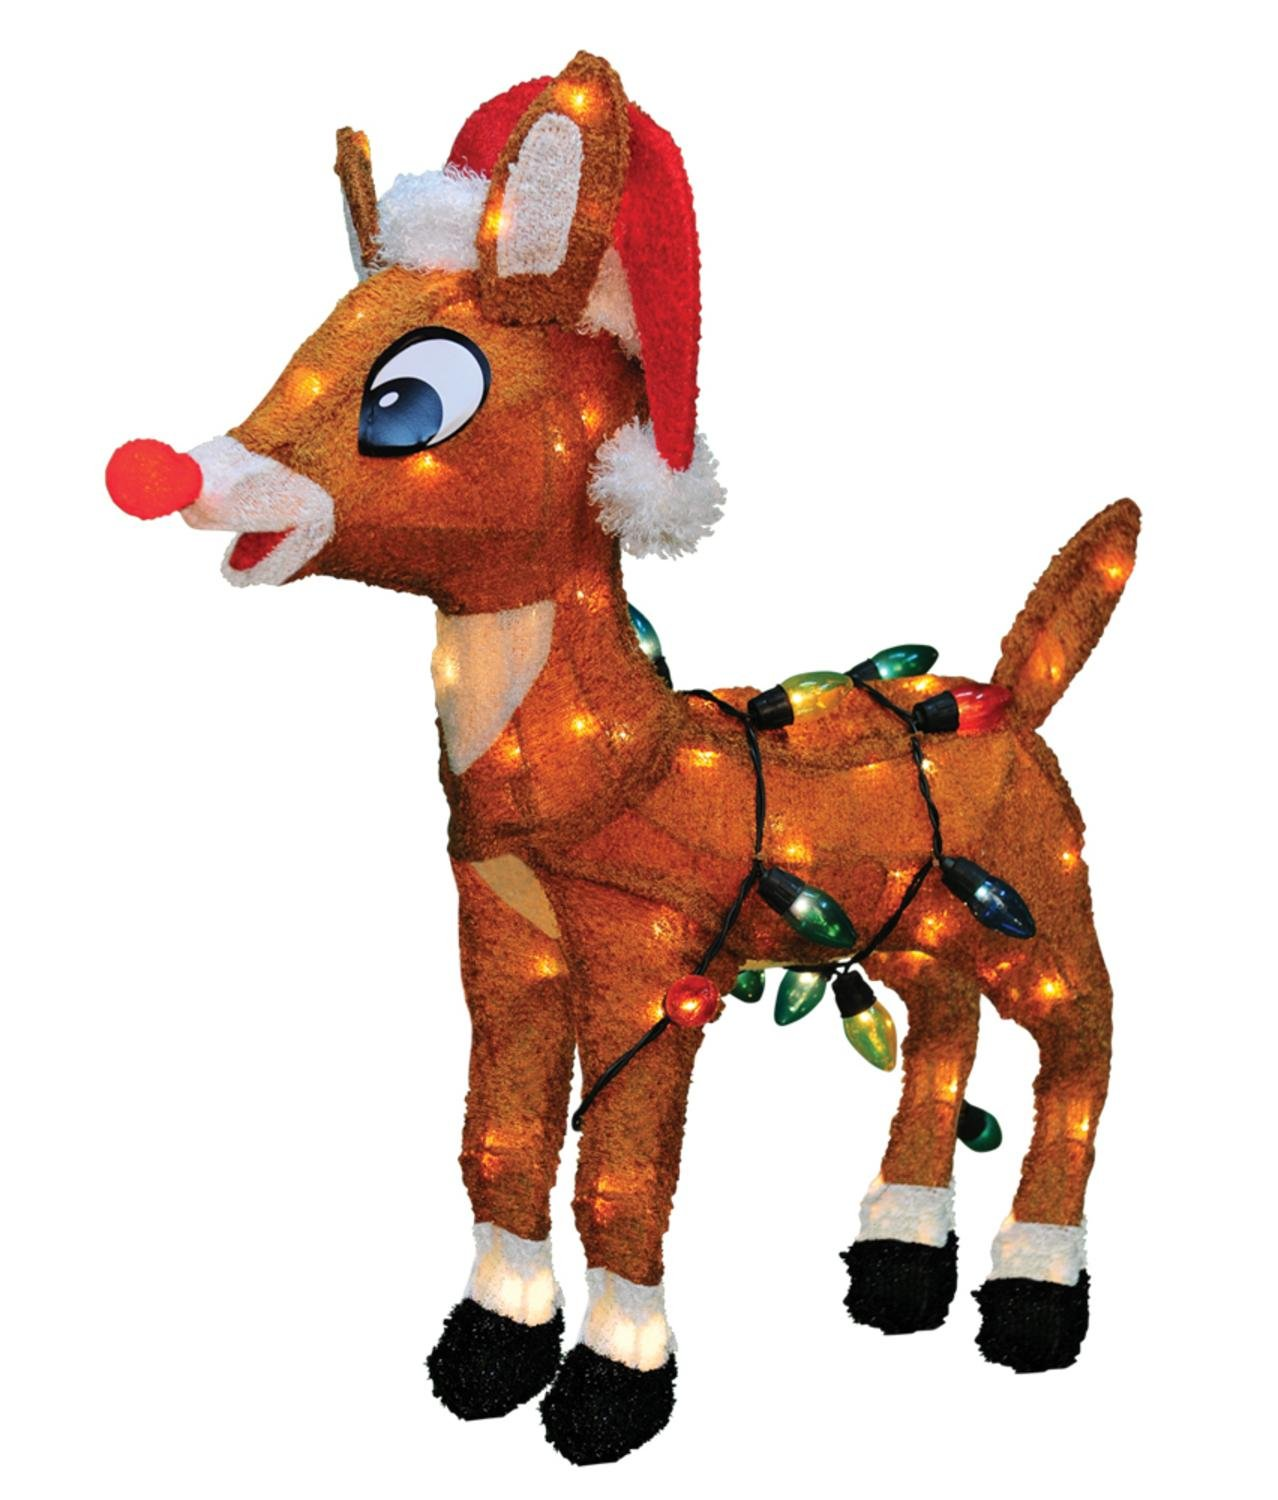 ProductWorks 24'' Pre-Lit Soft Tinsel Rudolph the Red-Nosed Reindeer Christmas Yard Art Decoration - Clear Lights